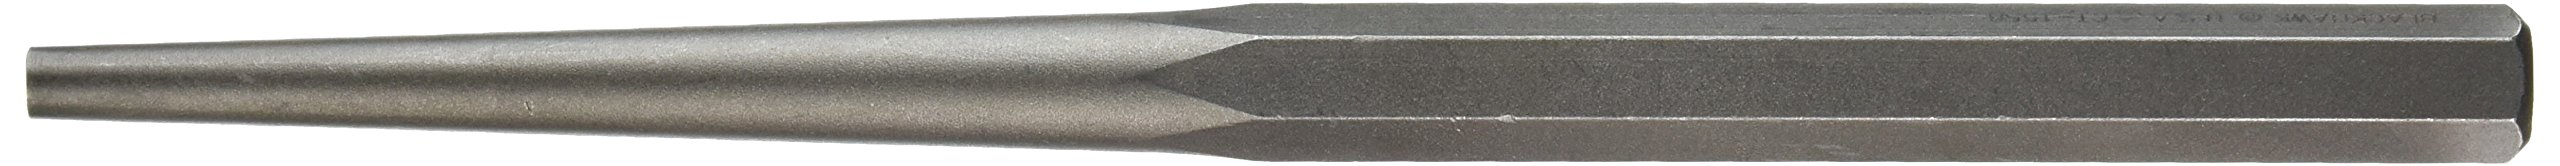 Blackhawk By Proto CT-1558 Long Taper Punch, 5/16 by 5/8 by 11-Inch